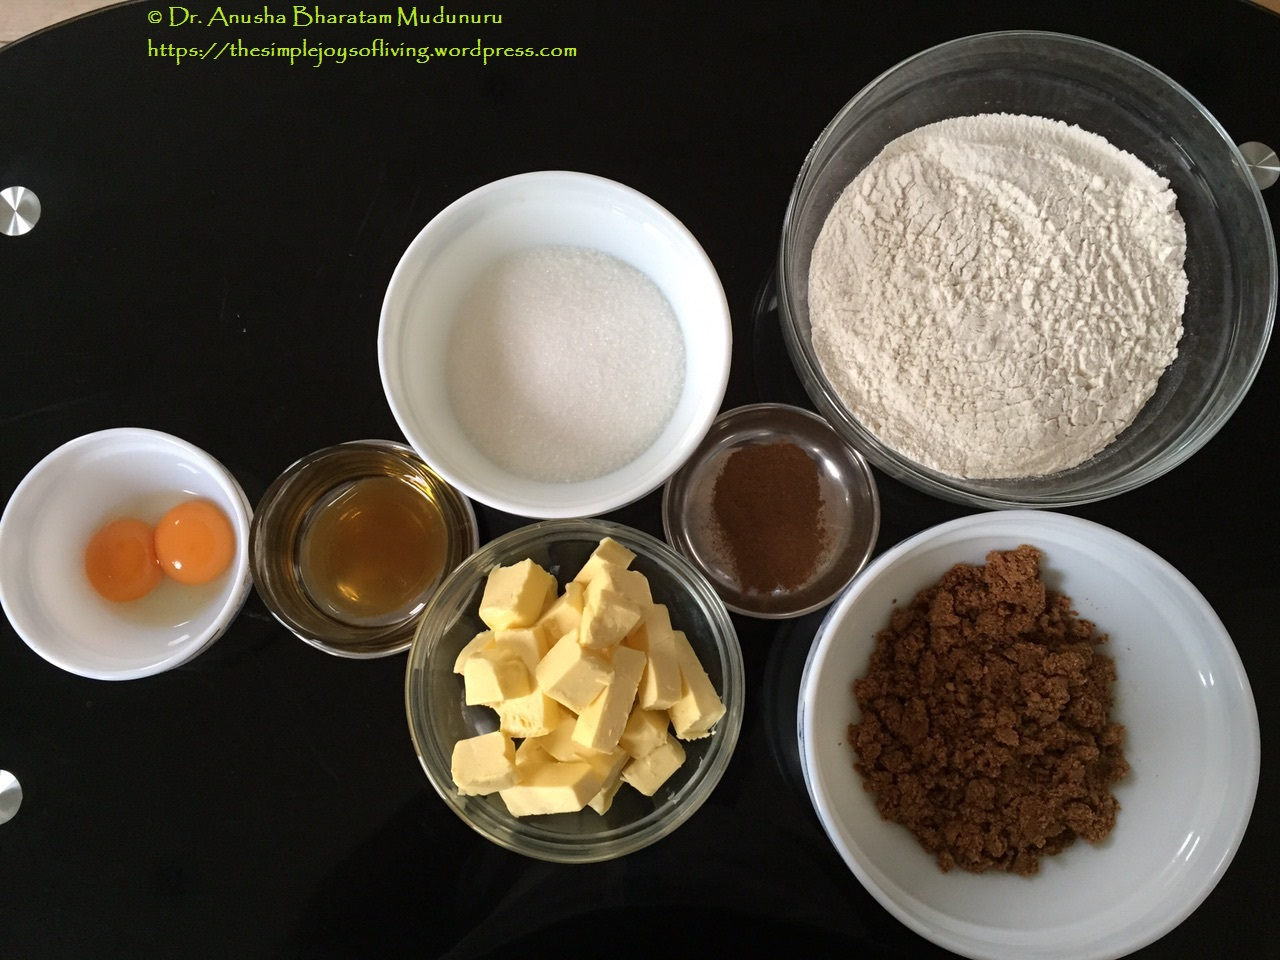 Lintzer Cookies - The Ingredients